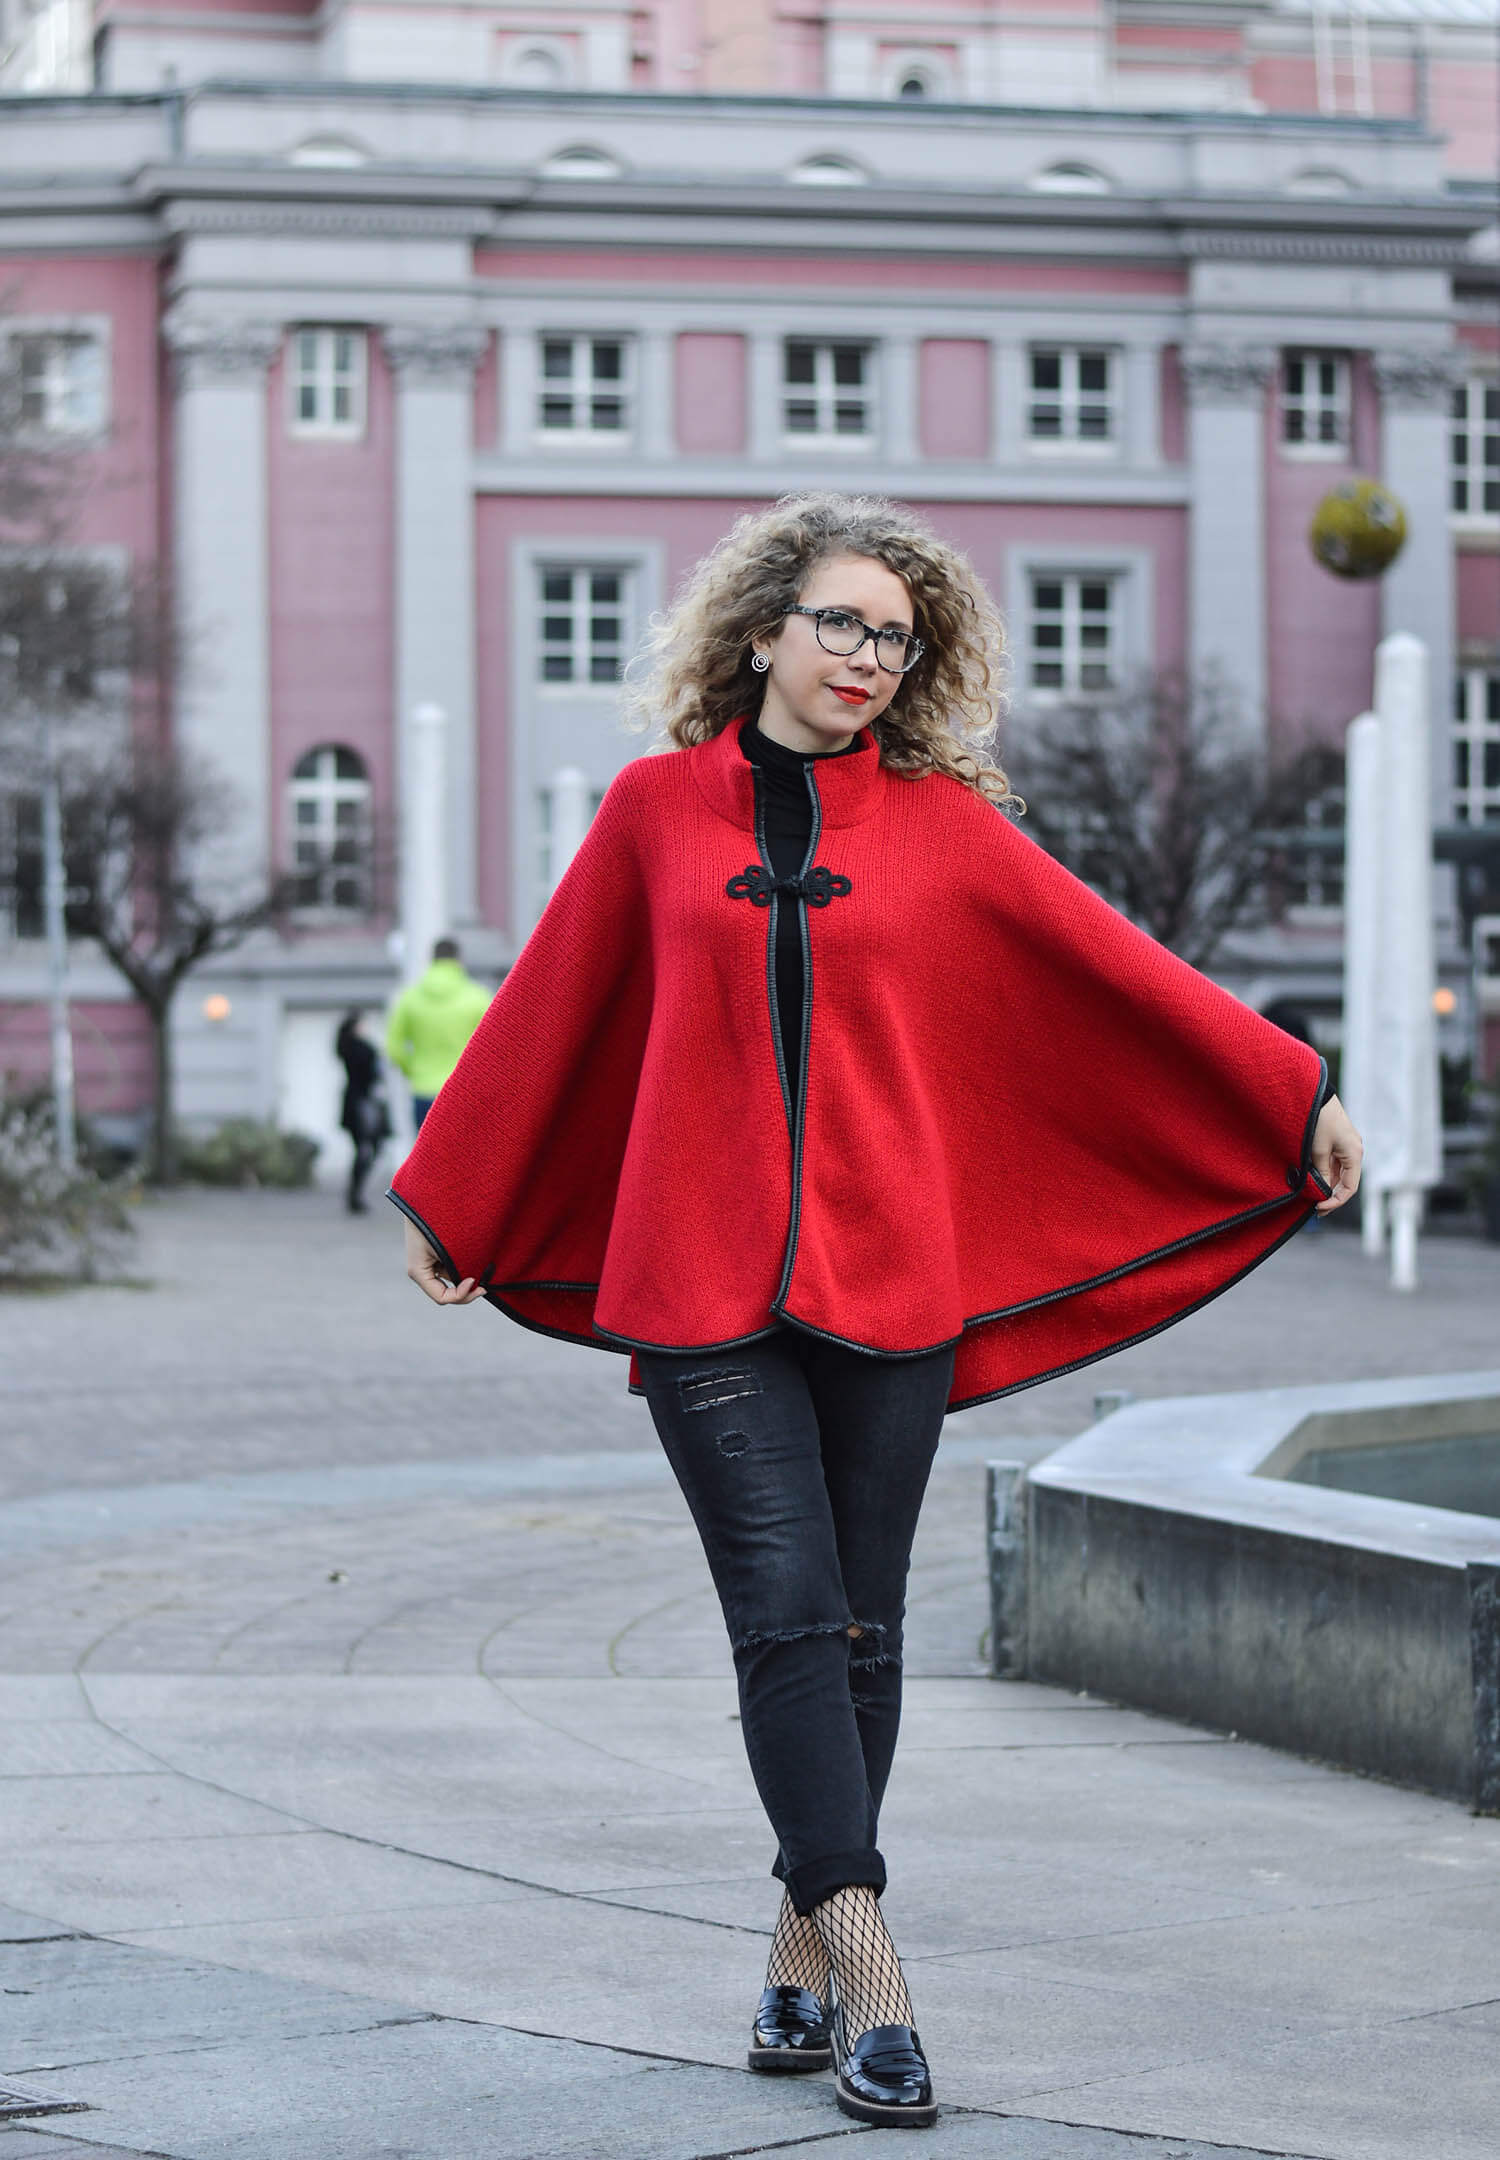 Kationette-Fashionblog-Germany-Streetstyle-Outfit-RedRidingHood-Ripped-Jeans-Fishnet-curls